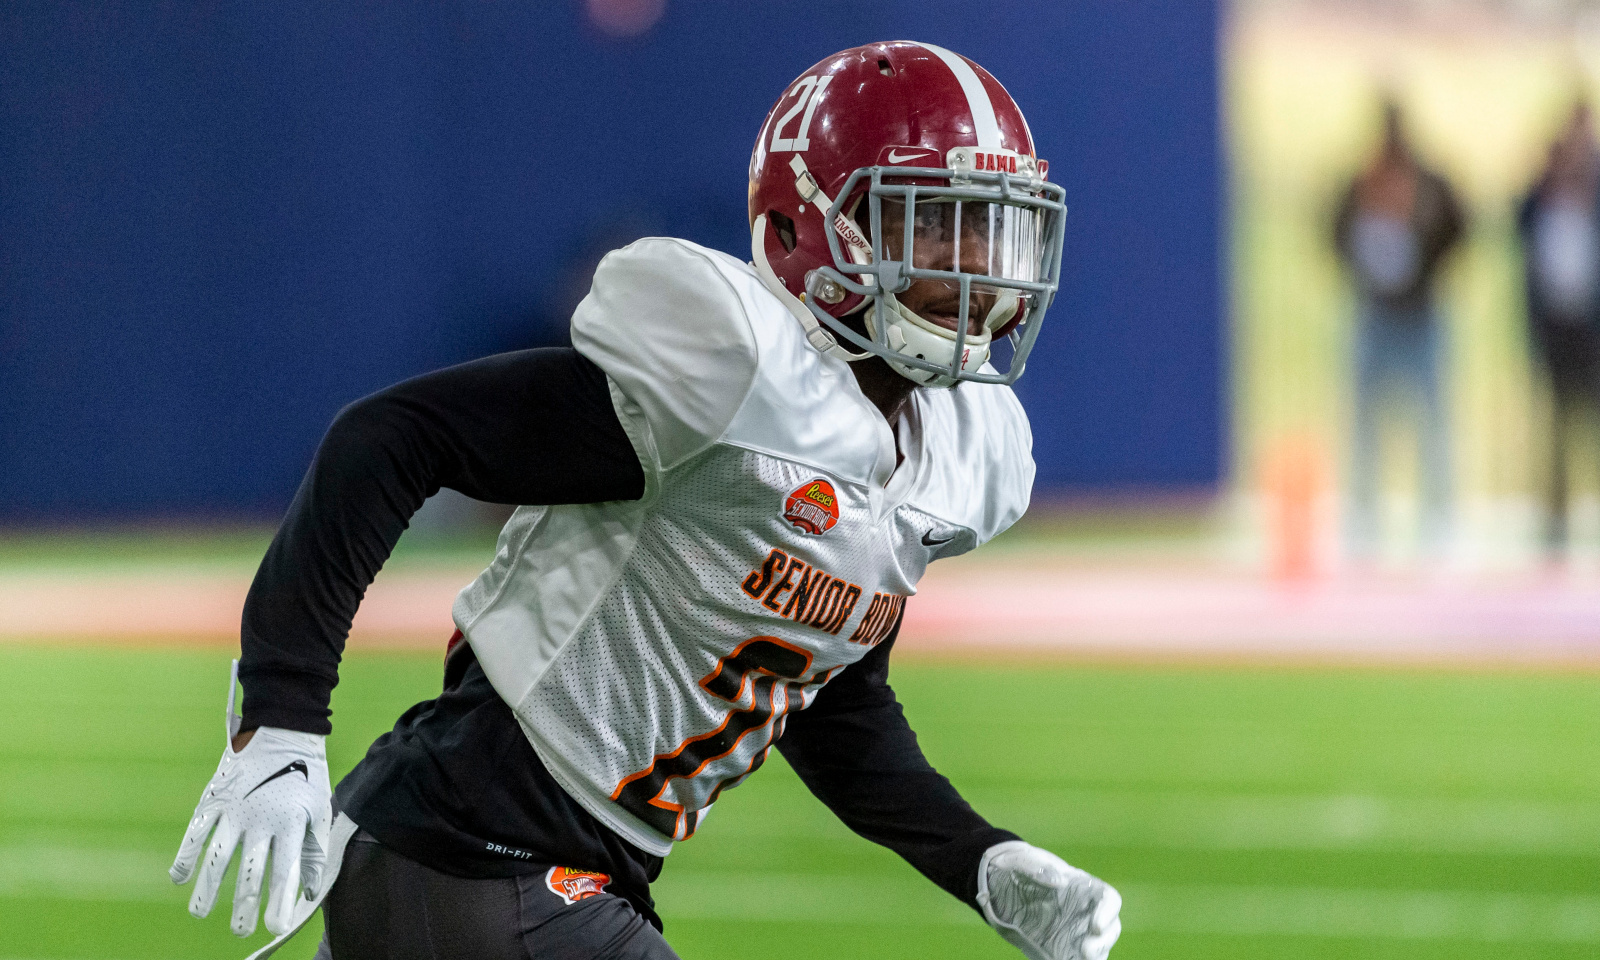 Former Tide safety, Jared Mayden has one goal at the Senior Bowl